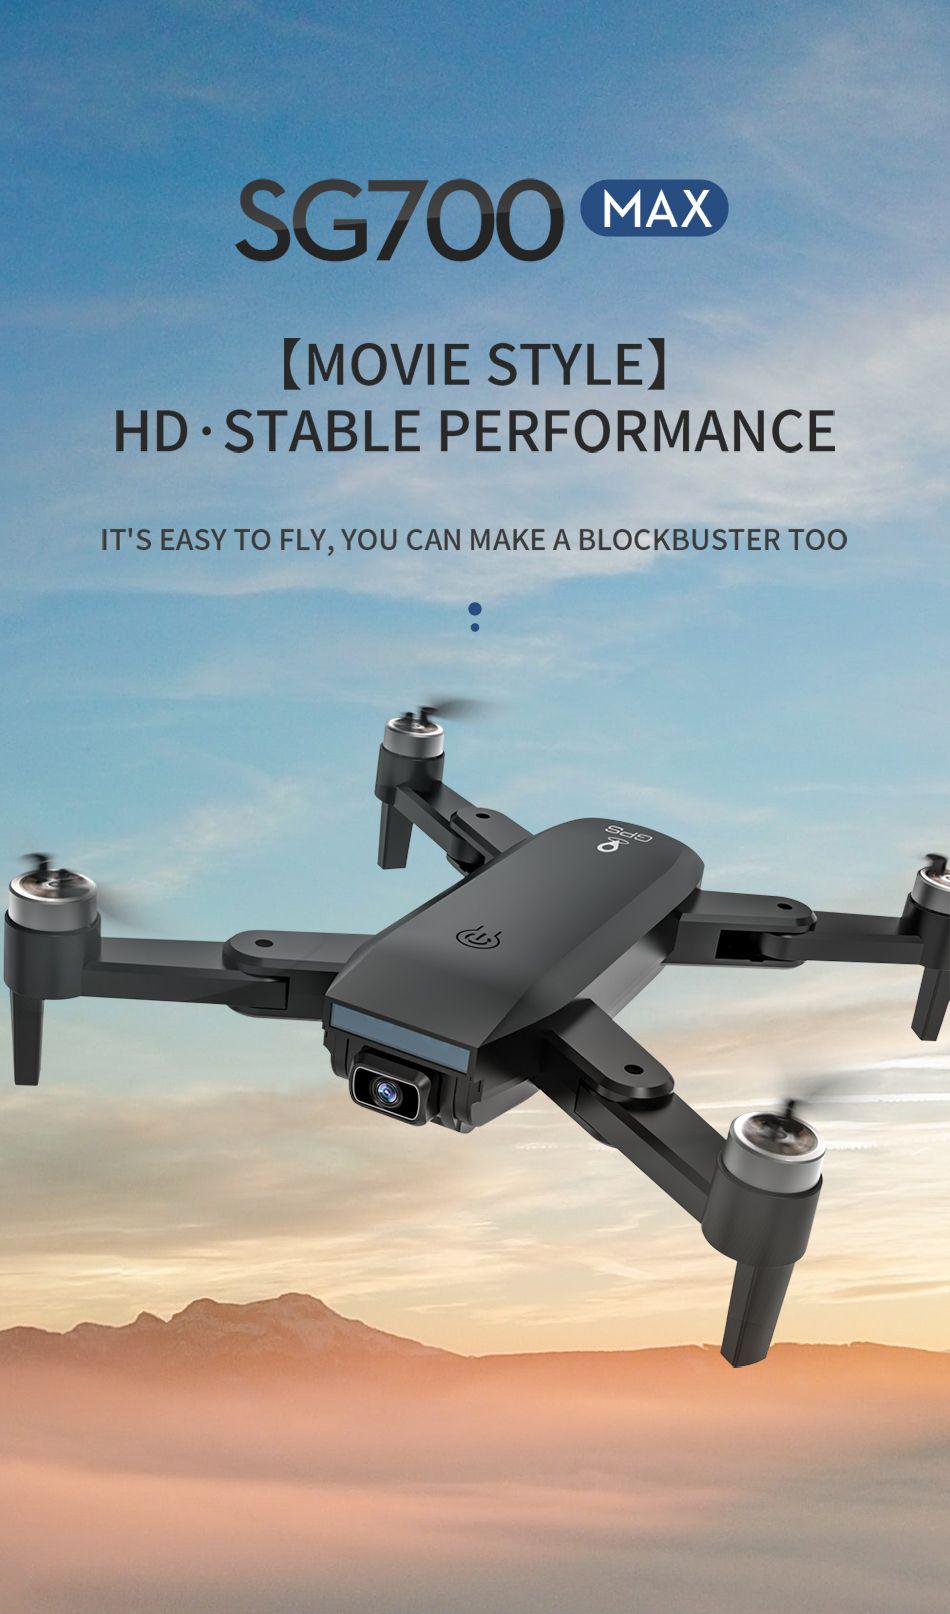 H7de27336539c4fbe9727d8e7dab75d32X - ZLL SG700 MAX Drone GPS 5G WiFi Dual Camera Brushless Motor Flight RC Distance 800m SG700 Pro Foldable Professional Quadcopter